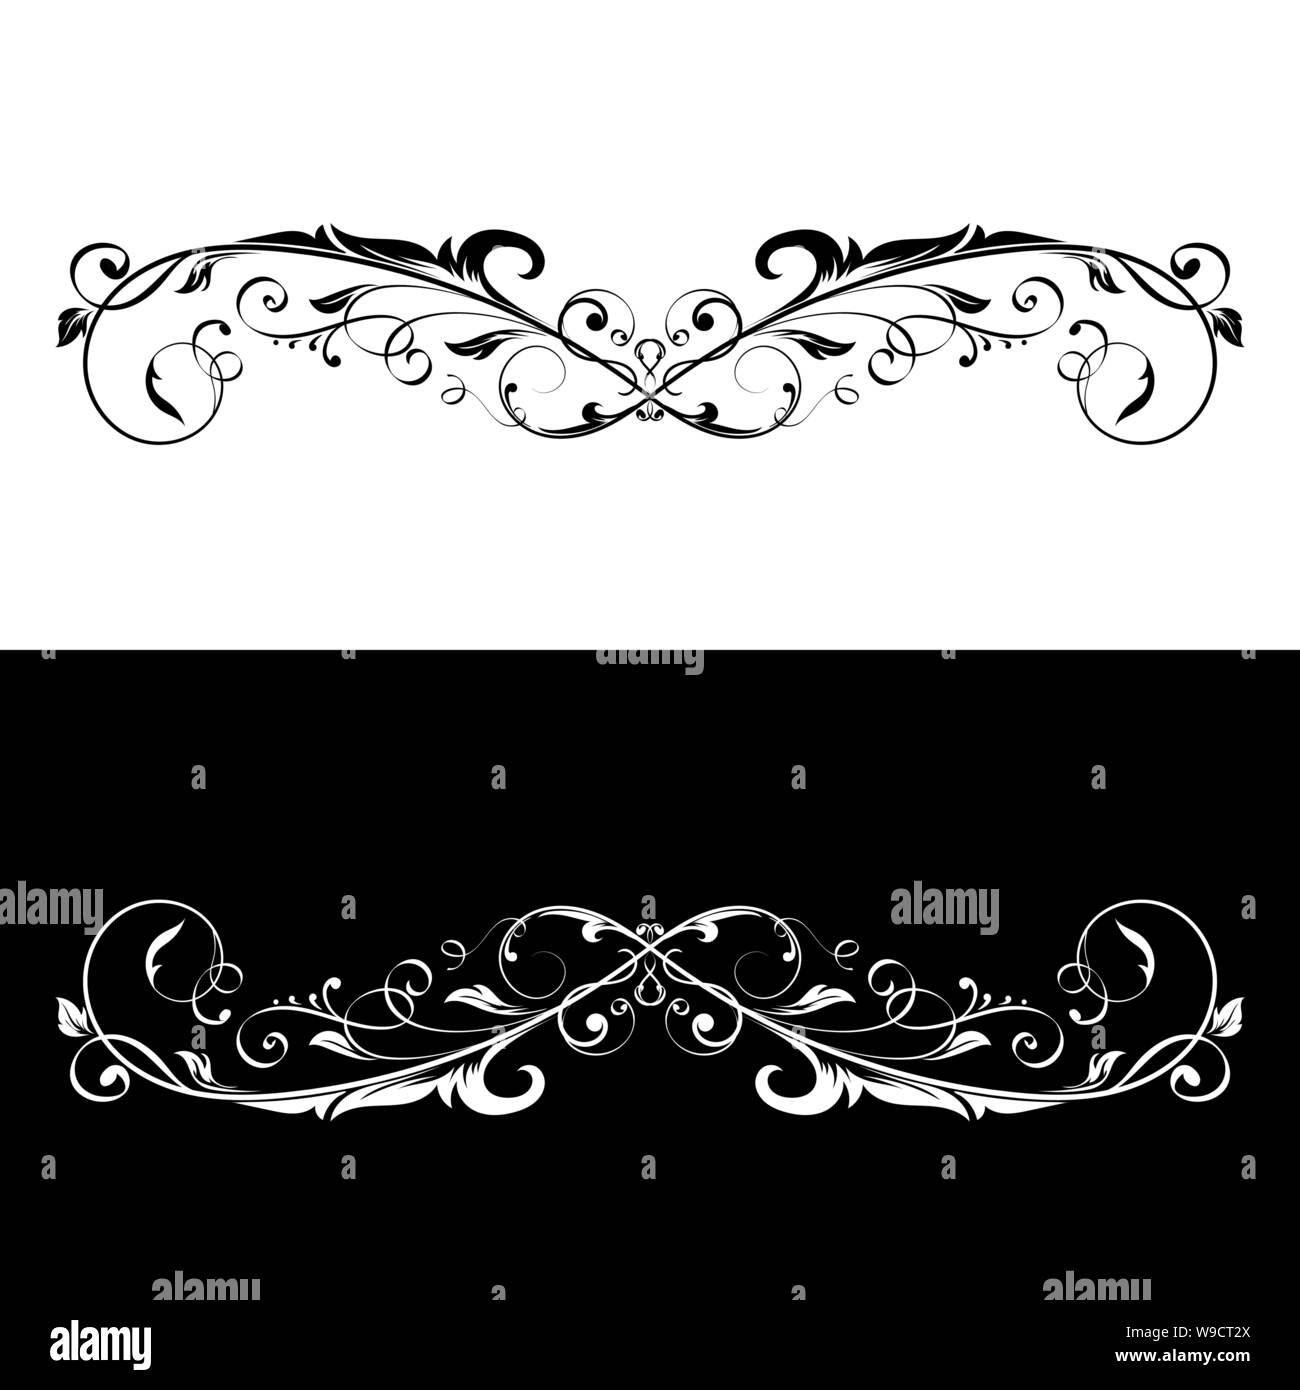 Ornamental dividers. Black and white decorative filigree design elements Stock Vector